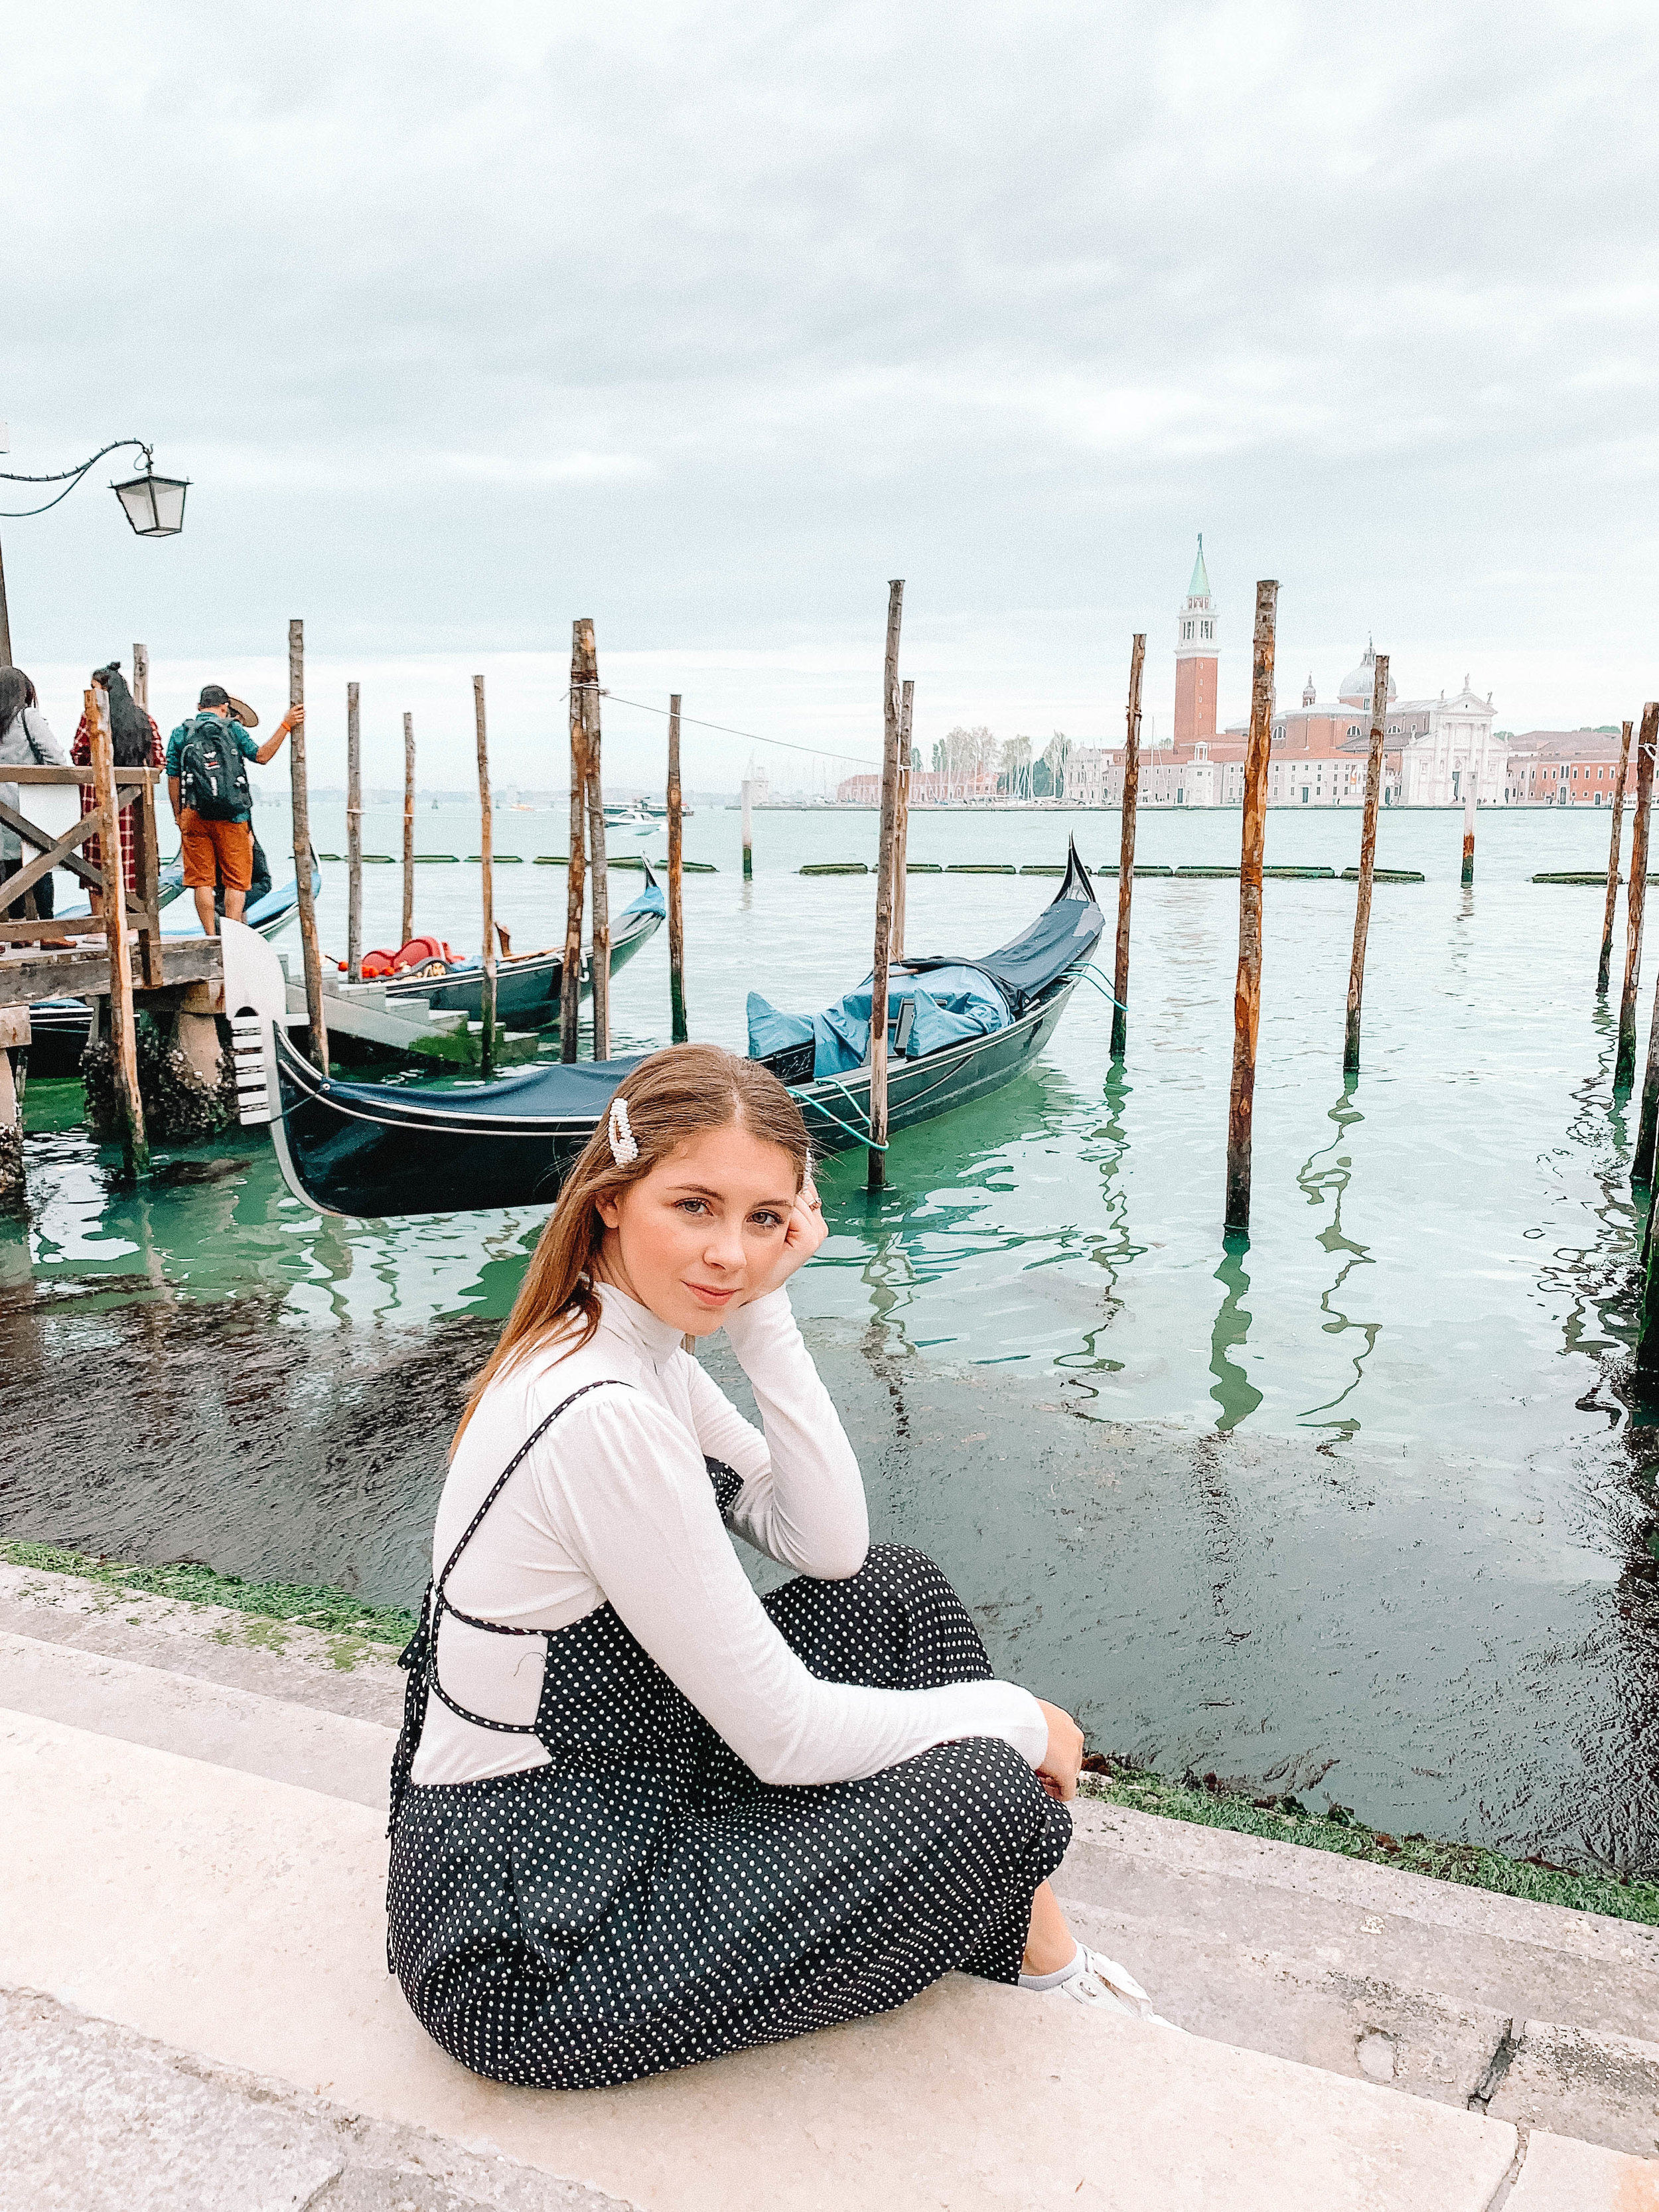 - Venice has got to be one of the most beautiful places I've ever been to. The canals rolling through the city were just gorgeous and I loved that there were no cars. It was the perfect first place to visit in Italy because it feels so quintessential.